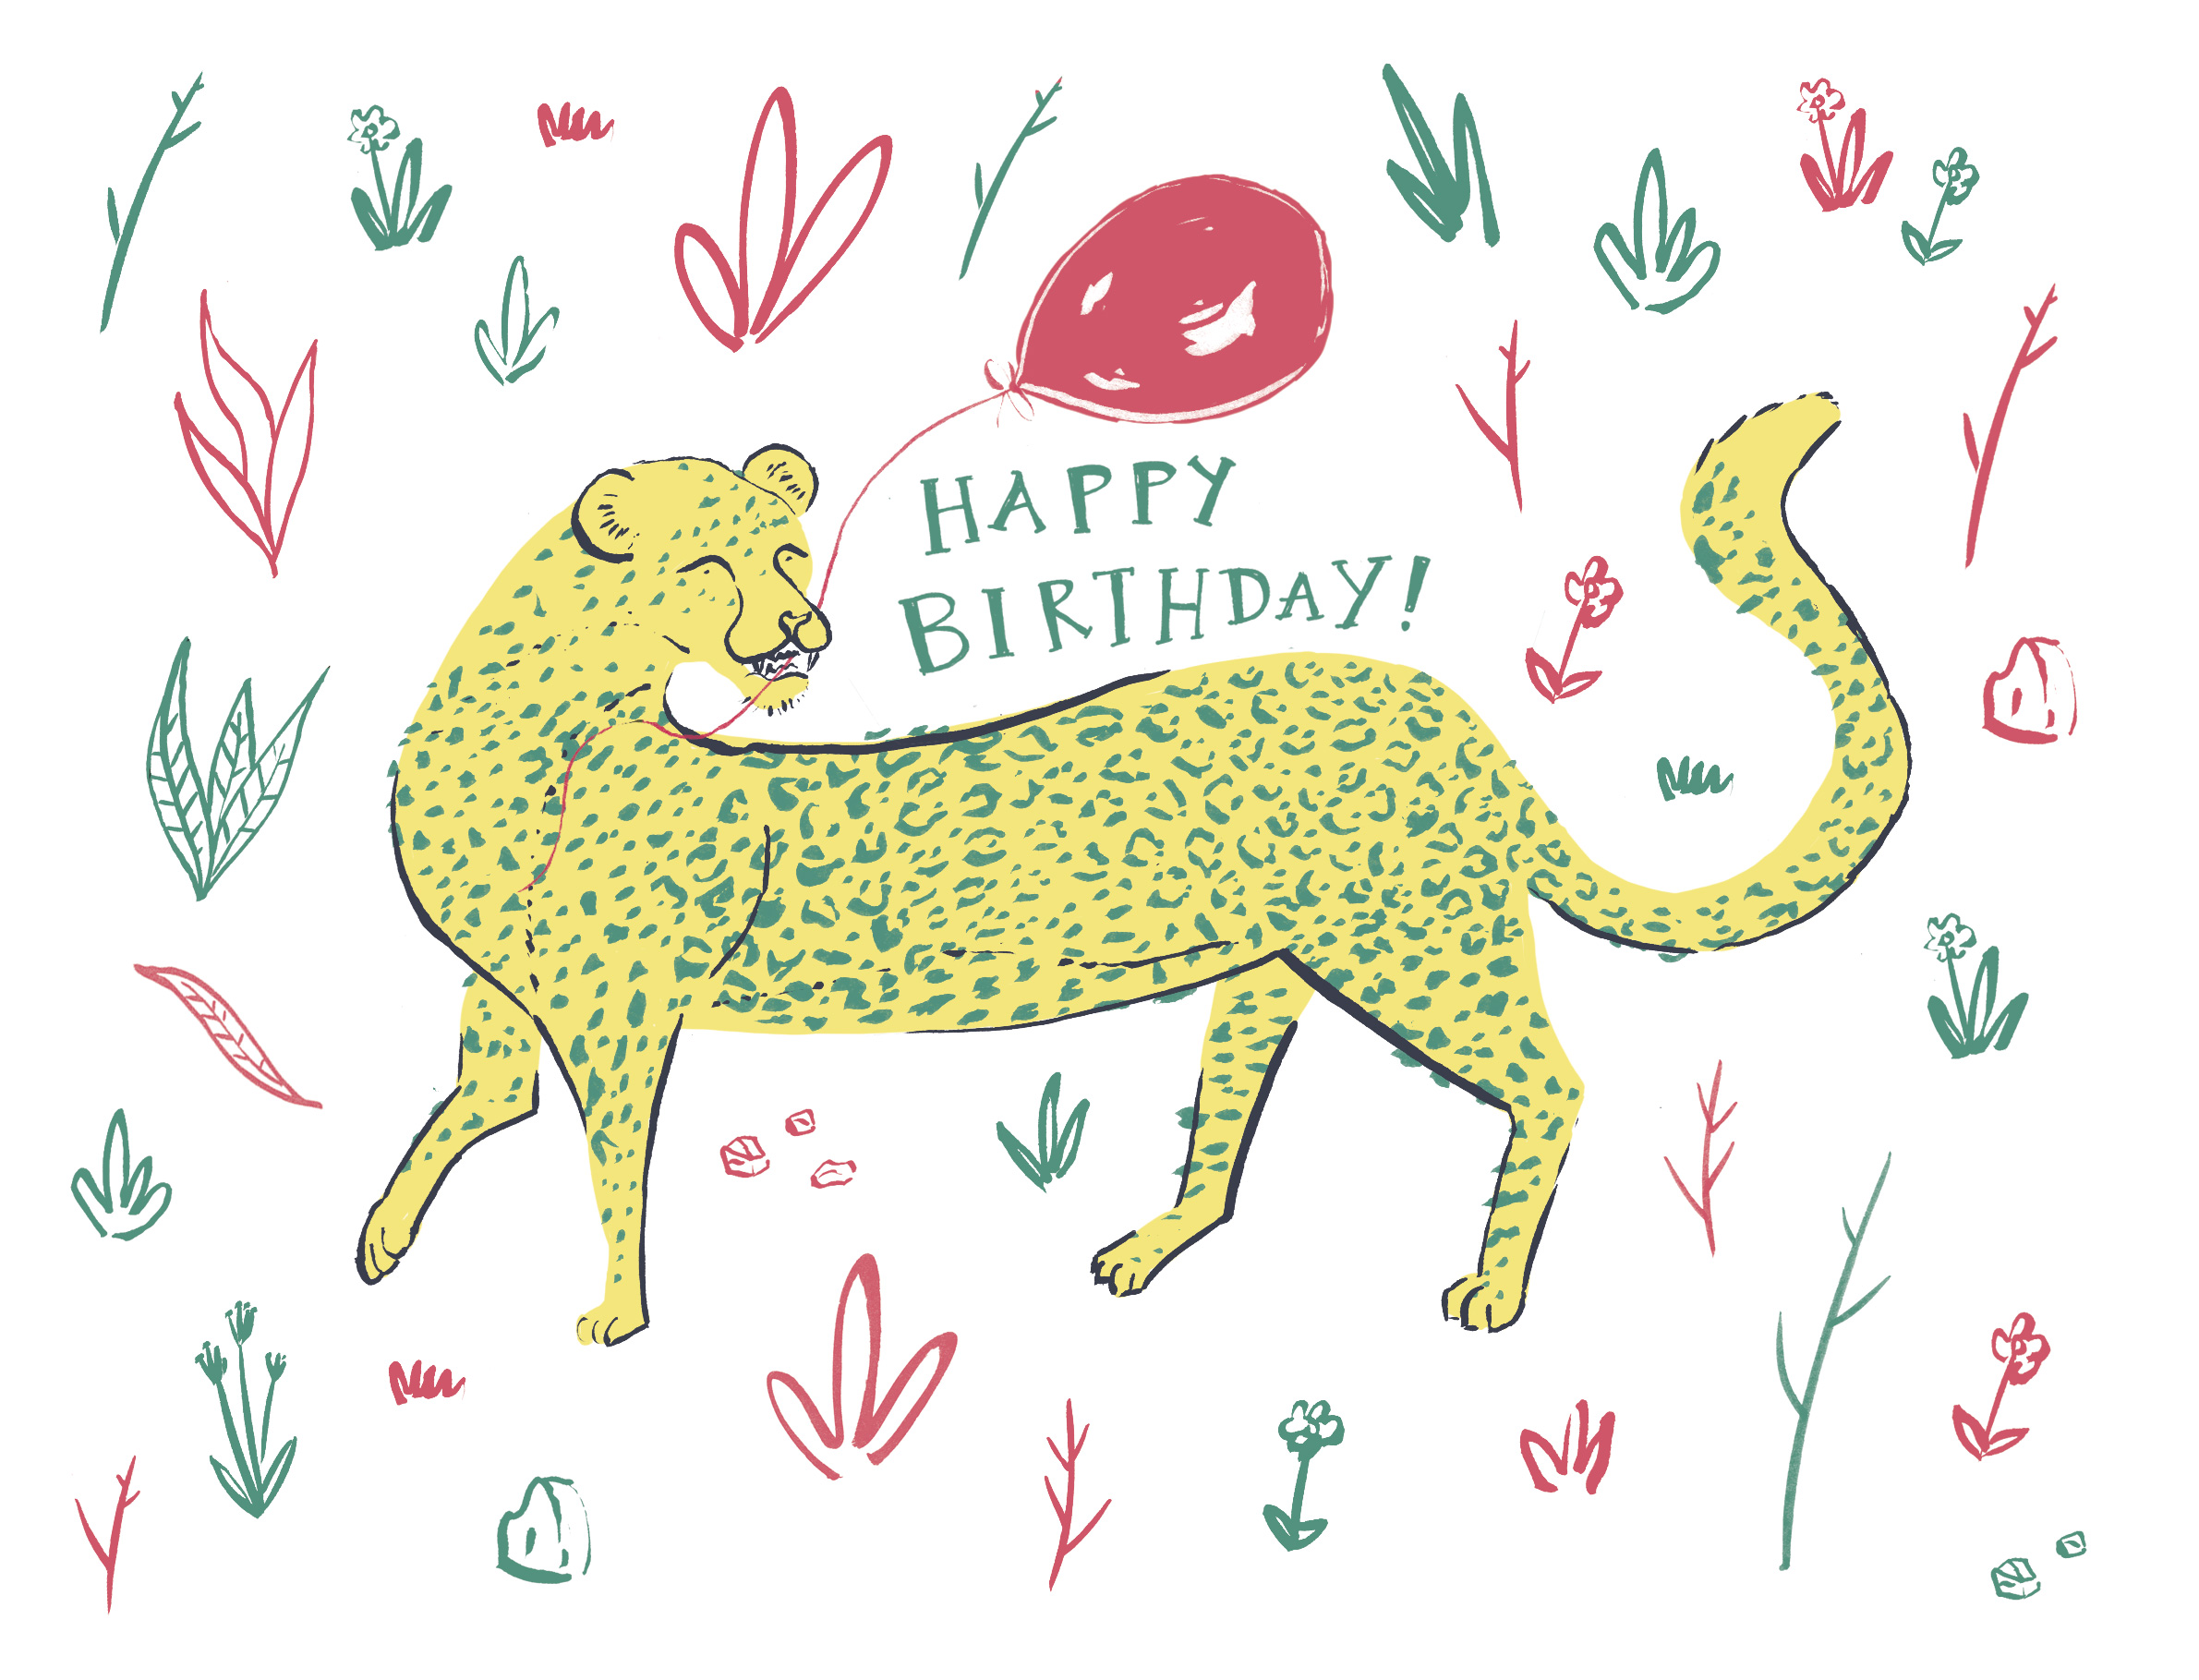 Birthday leopard - A personal card design for my online store, coming A/W 2018.